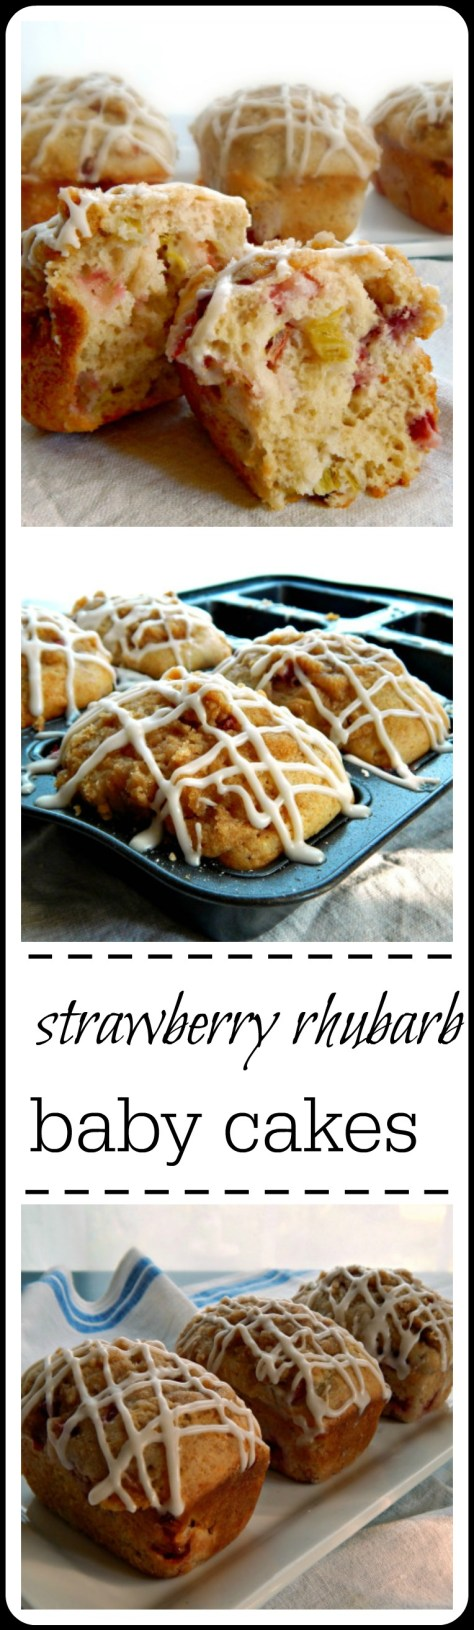 strawberry rhubarb babycakes